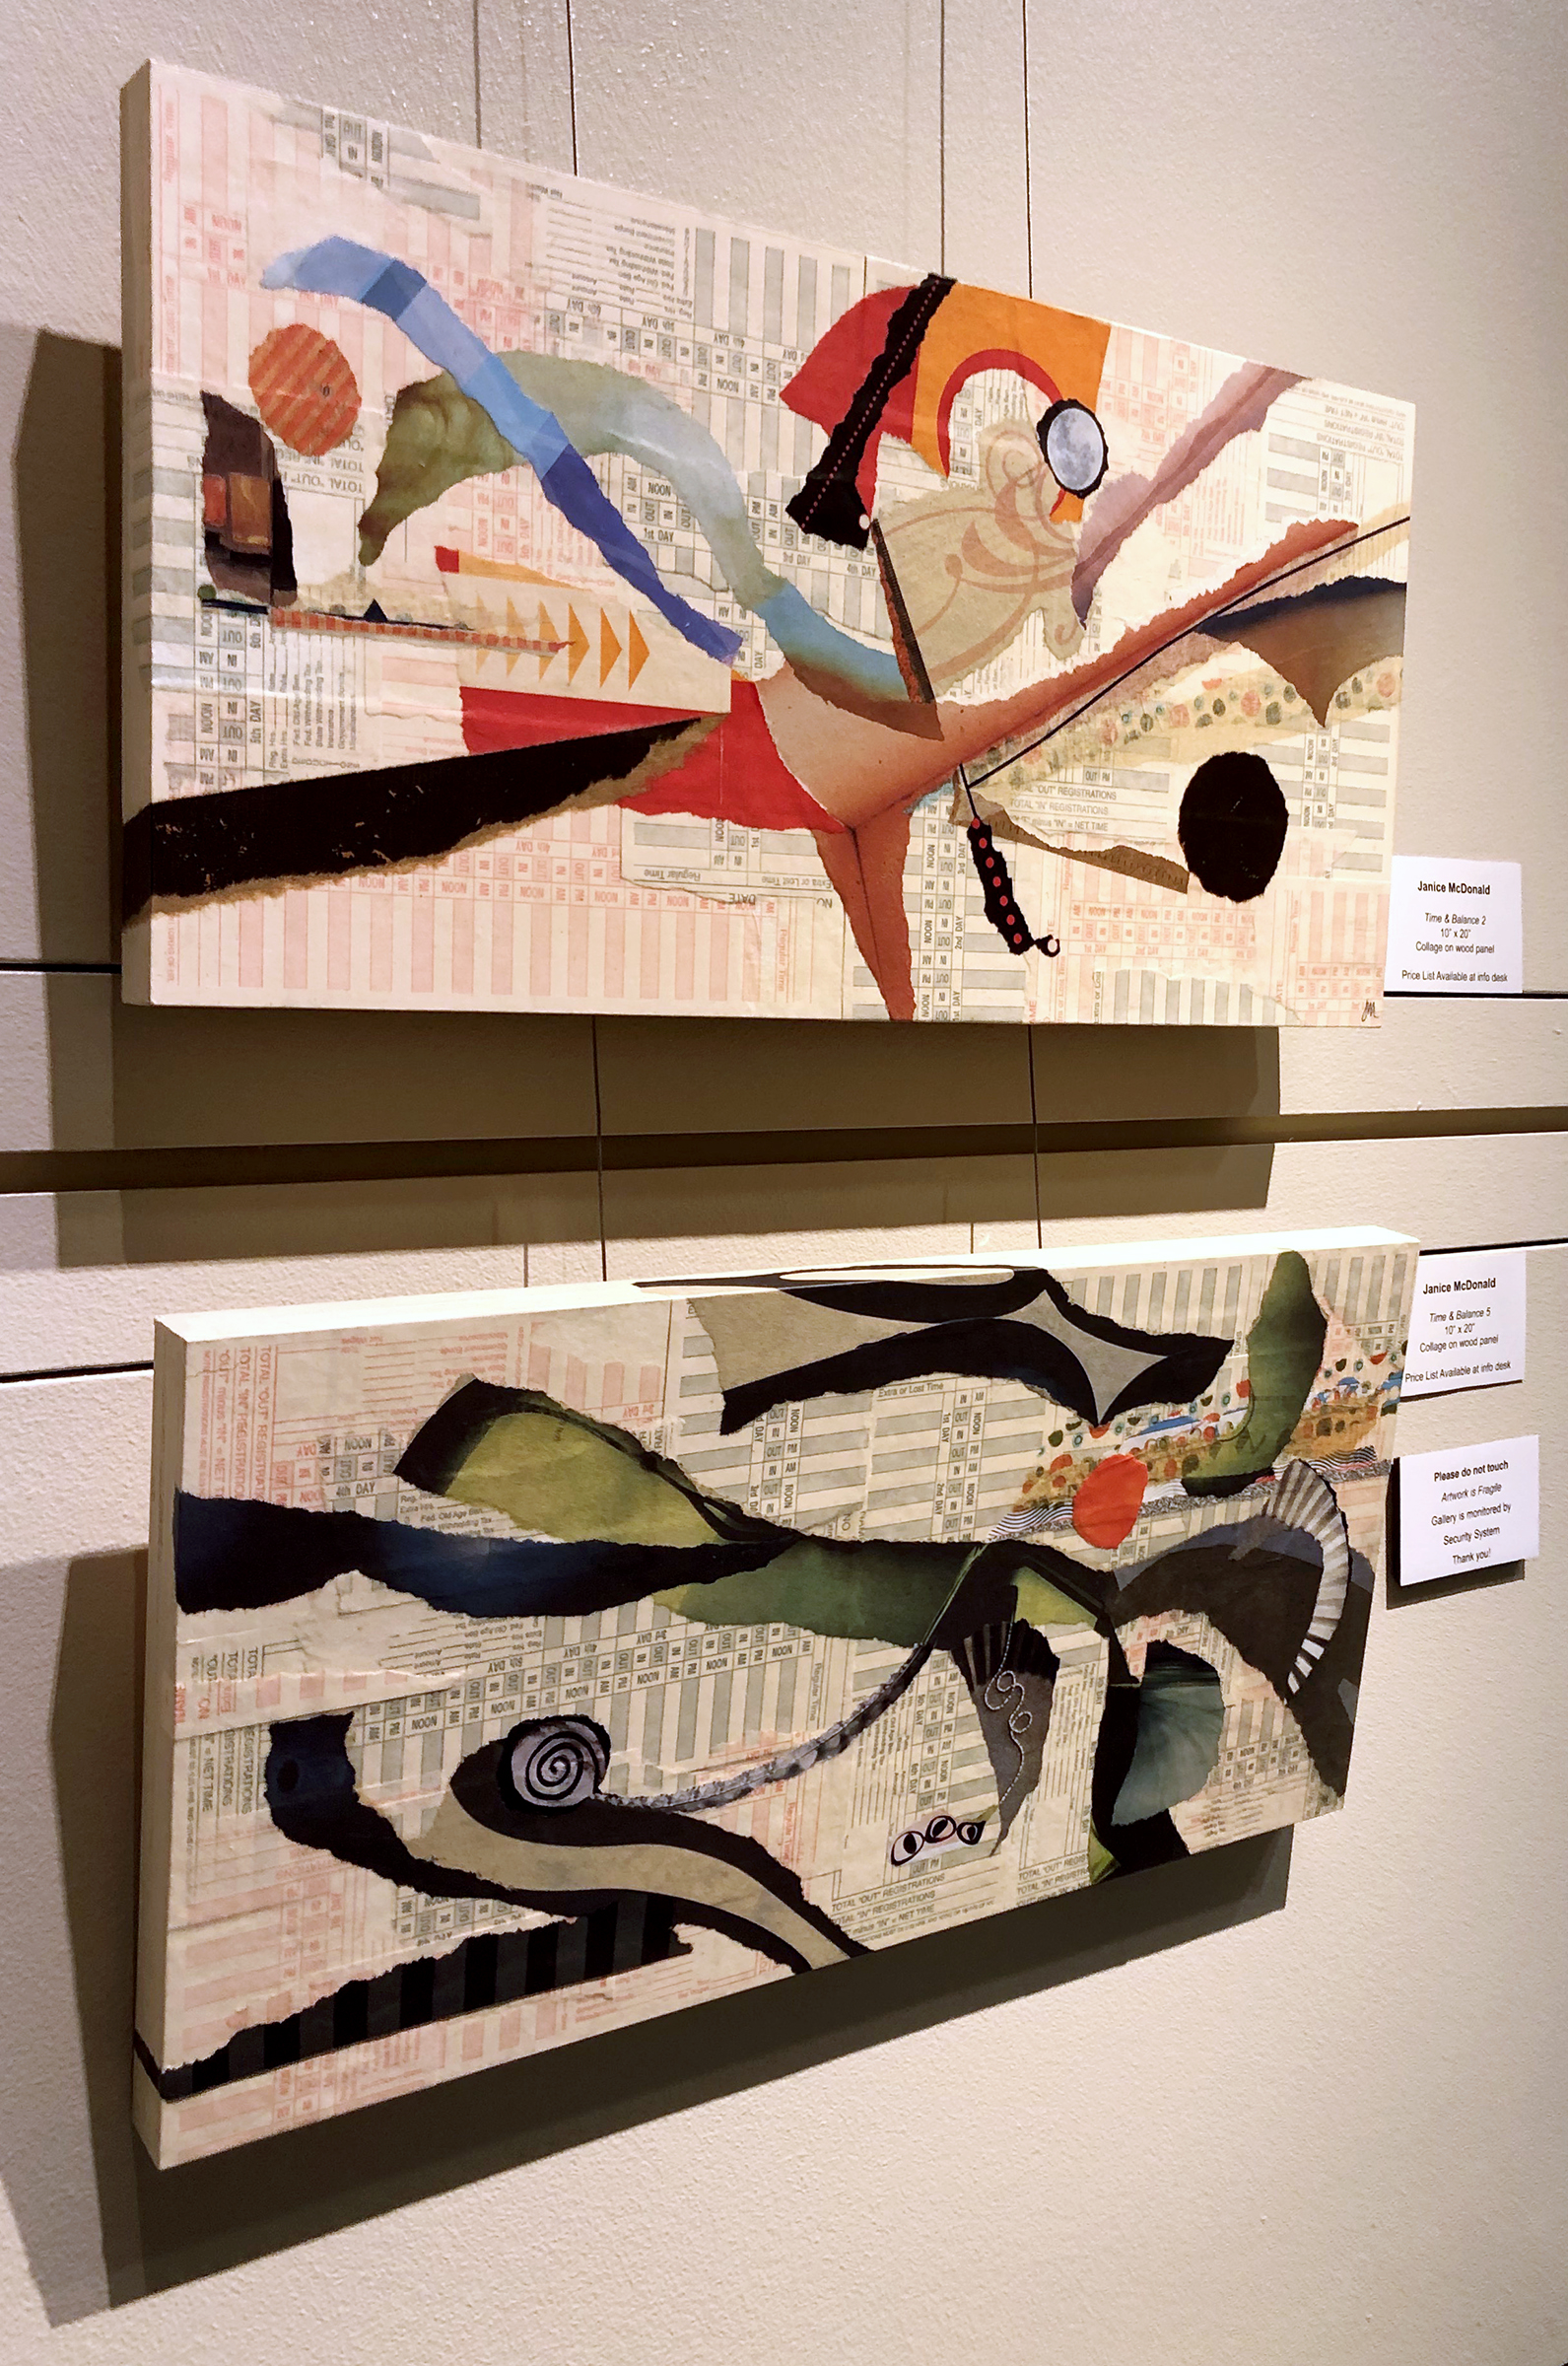 Collages from the time and balance series, which incorporate time cards and assorted found papers, including newspapers.